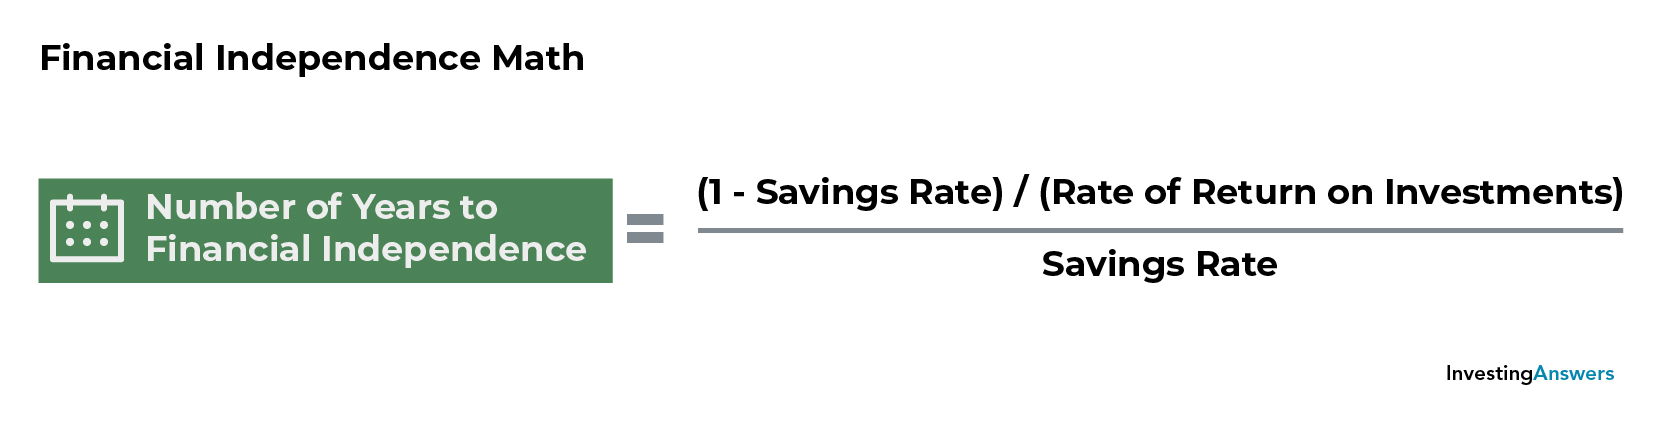 Financial independence math